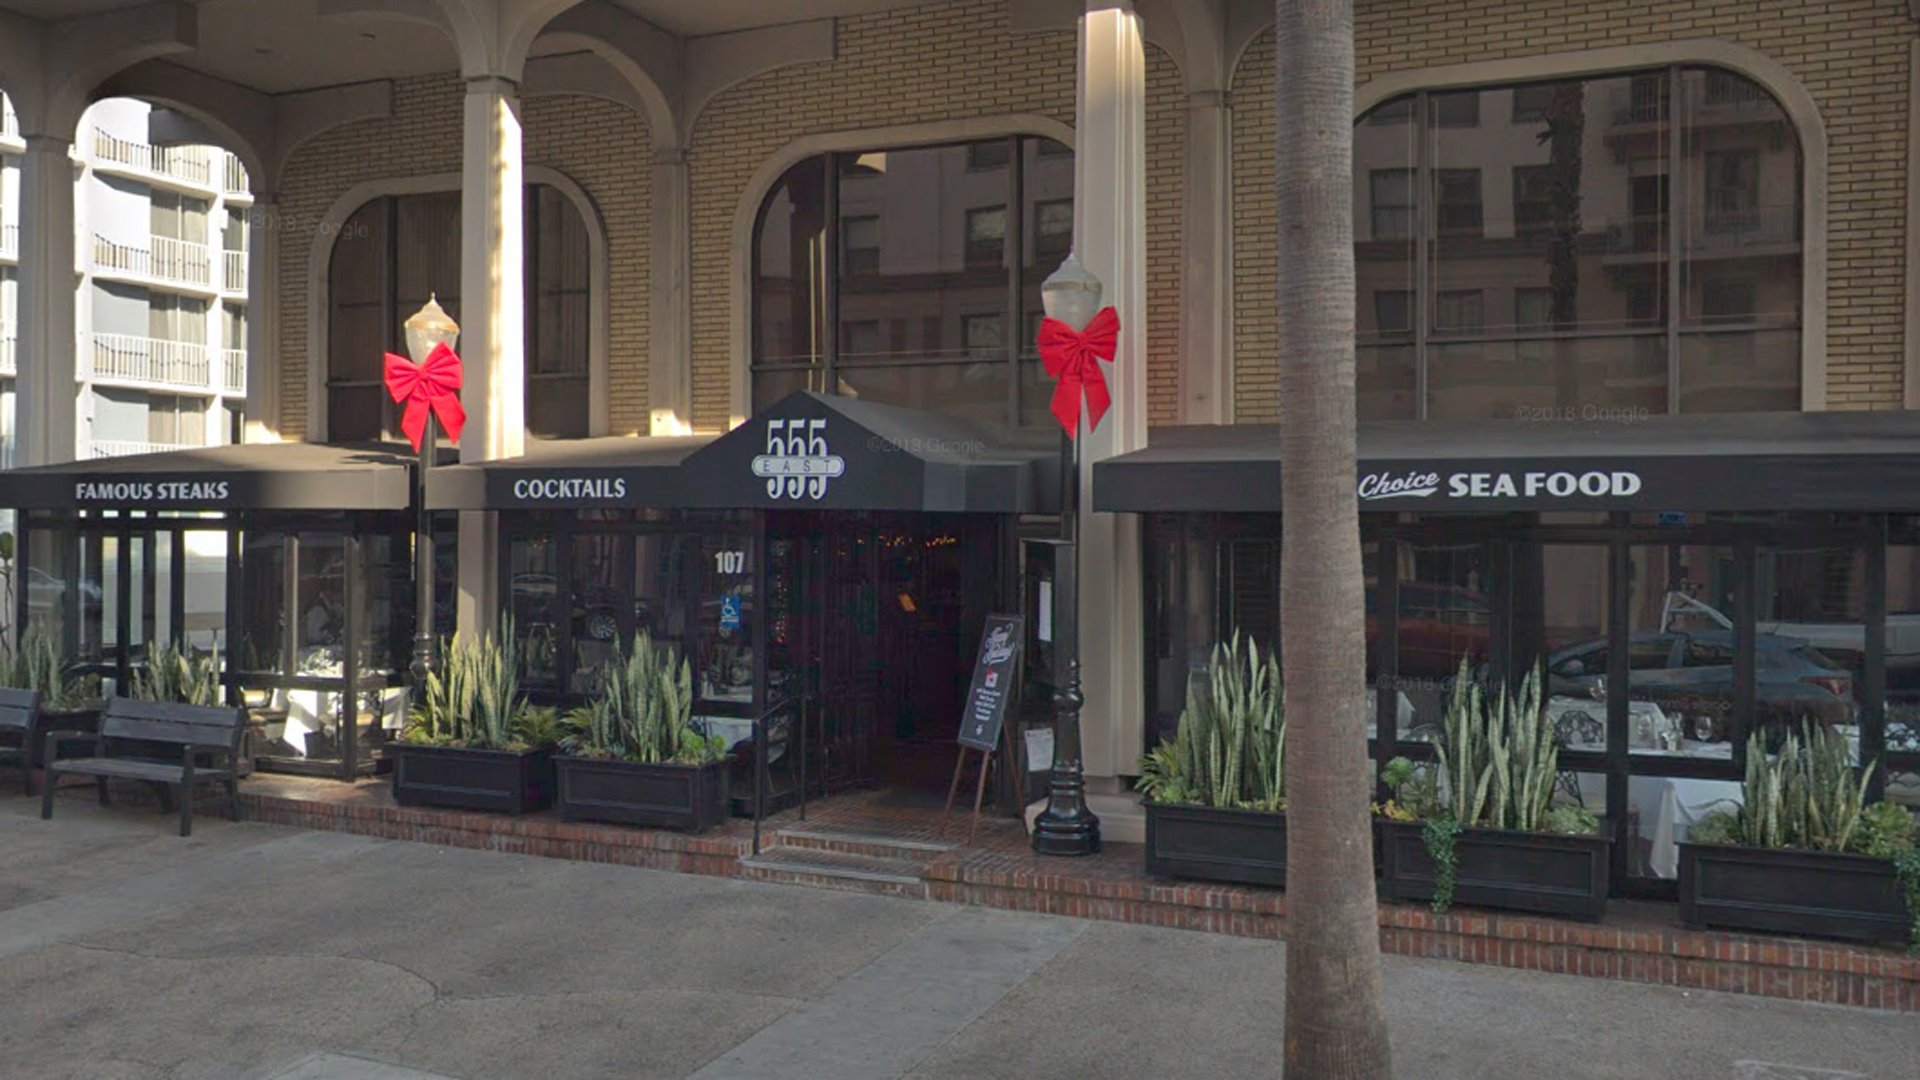 555 East American Steakhouse is seen in this Google Maps image.